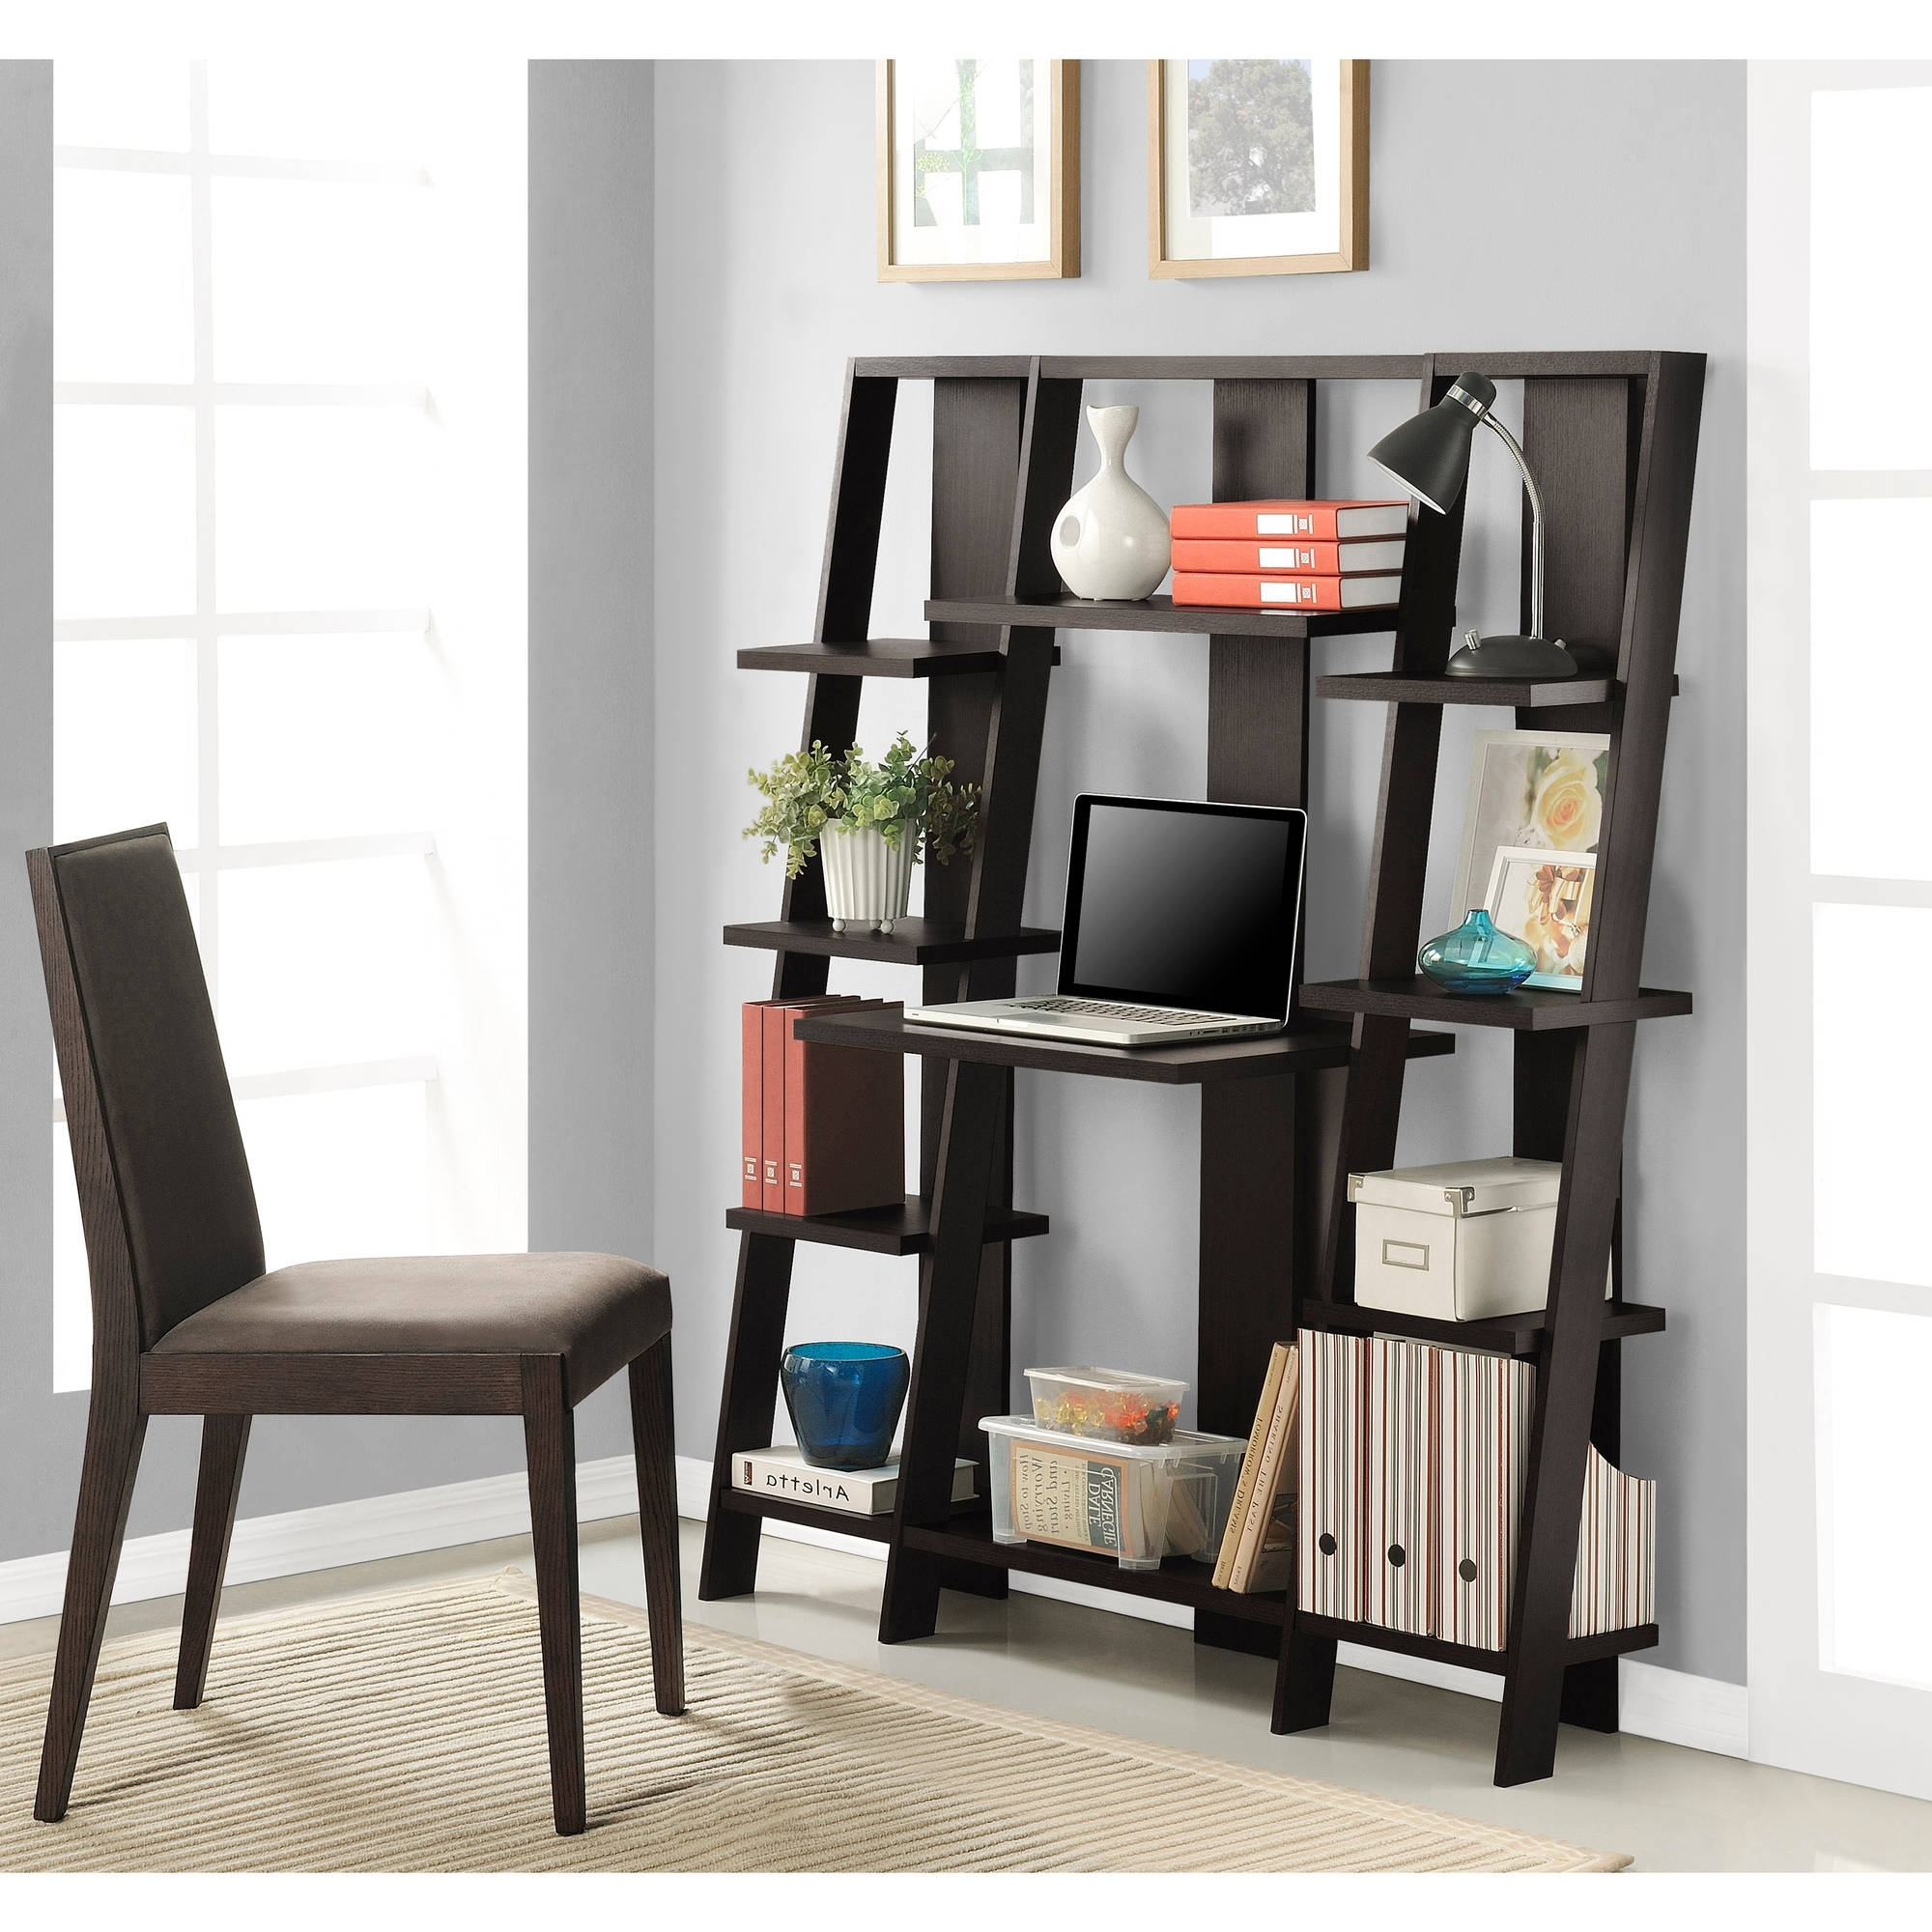 Fashionable Ameriwood Home Gradient Ladder Desk/bookcase, Espresso – Walmart In Leaning Shelf Bookcases (View 11 of 15)